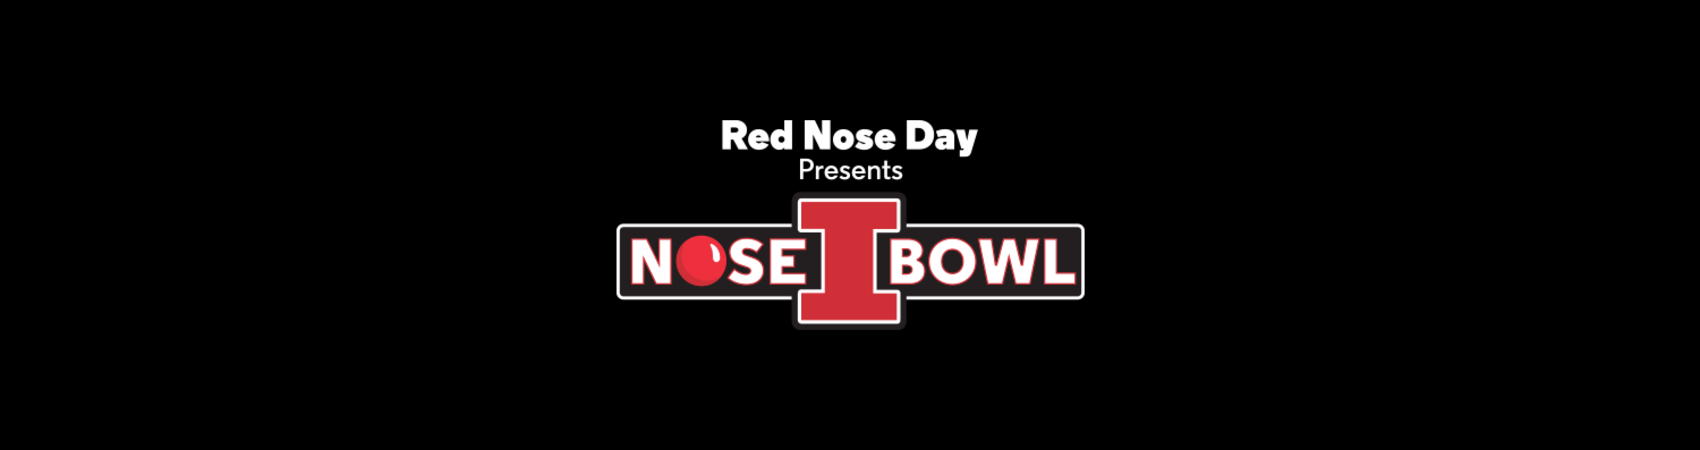 Nose Bowl Image